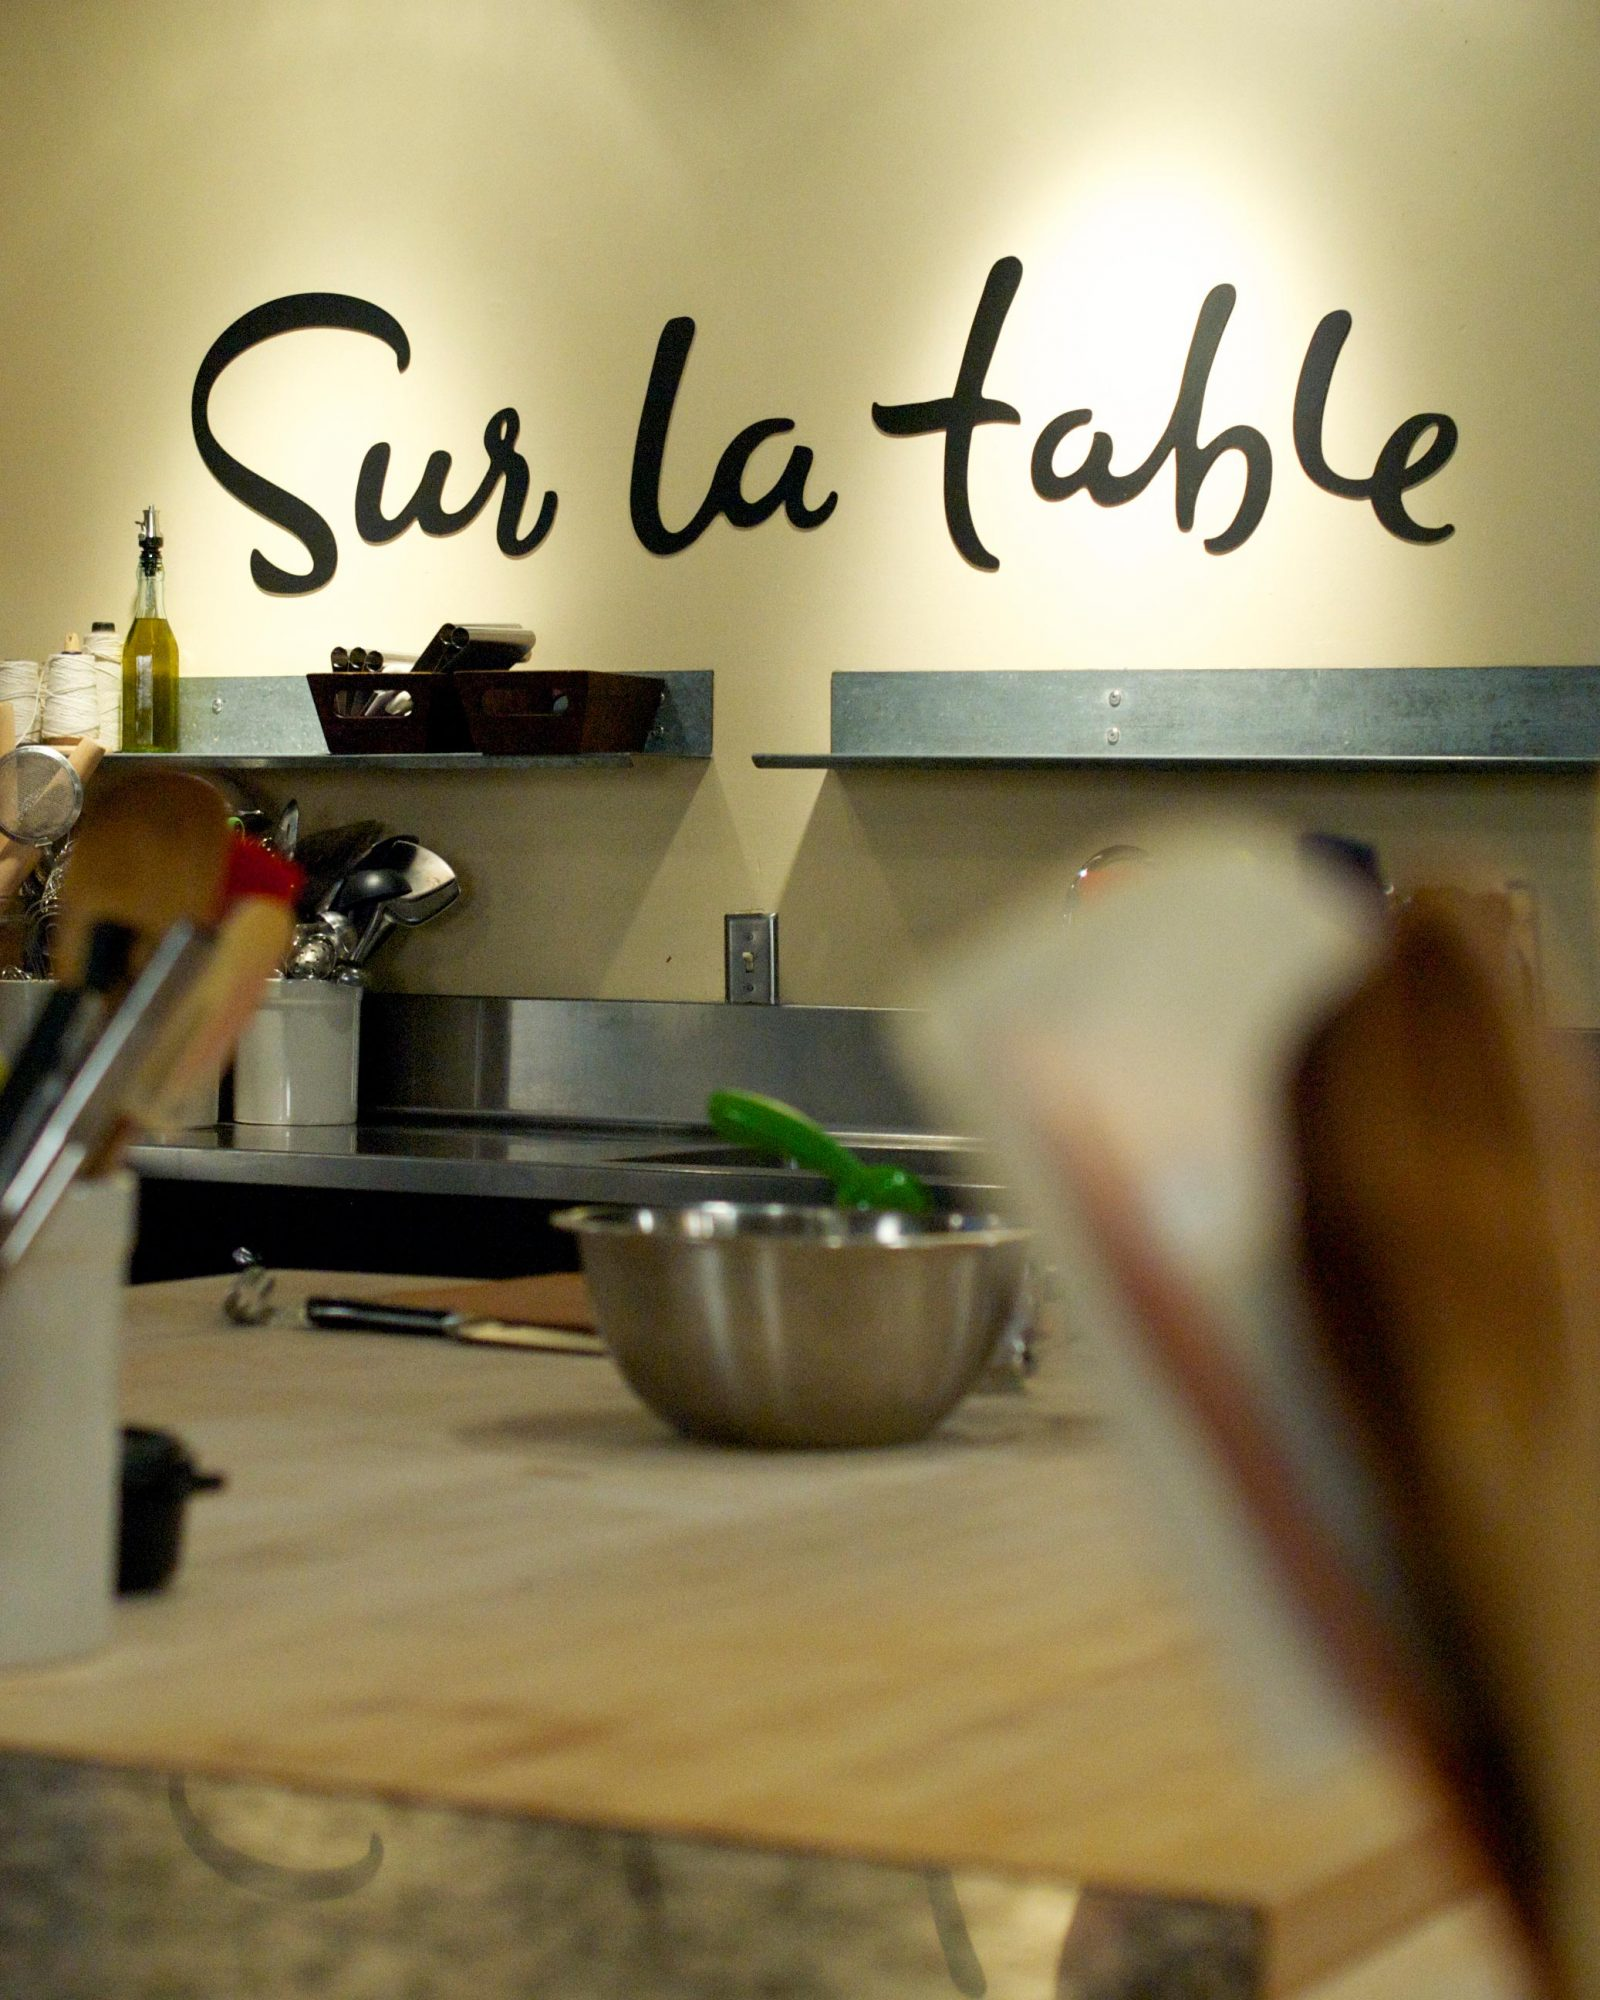 sur-la-table-class-valentines-day-gift-0216.jpg